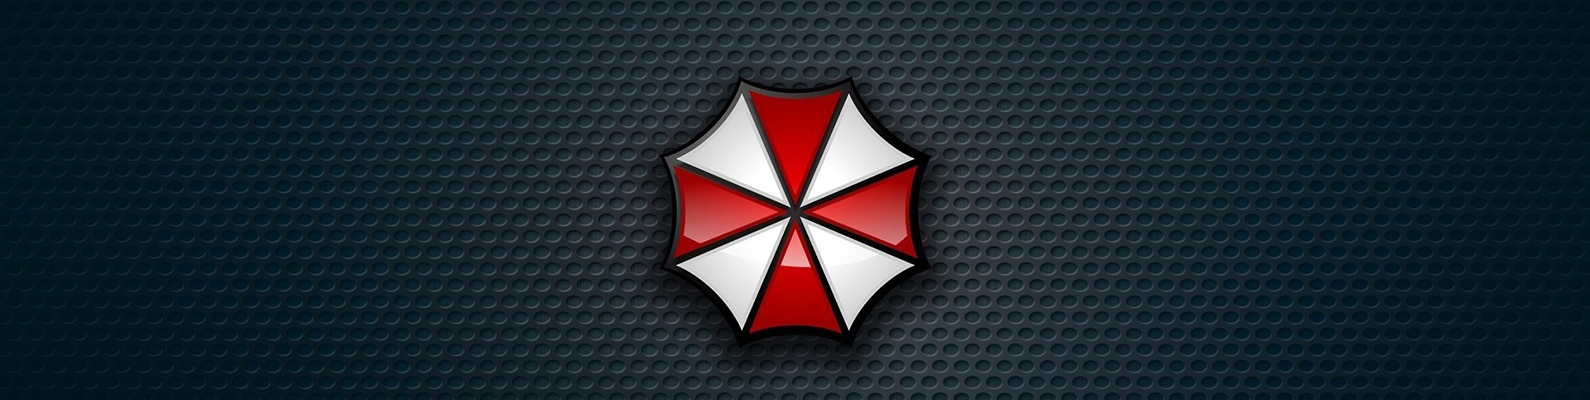 logo, Biohazard, Resident Evil, Umbrella Corp., evil, Our Business is Life Itself, Umbrella Corporarion, RE, cross, Umbrella, by